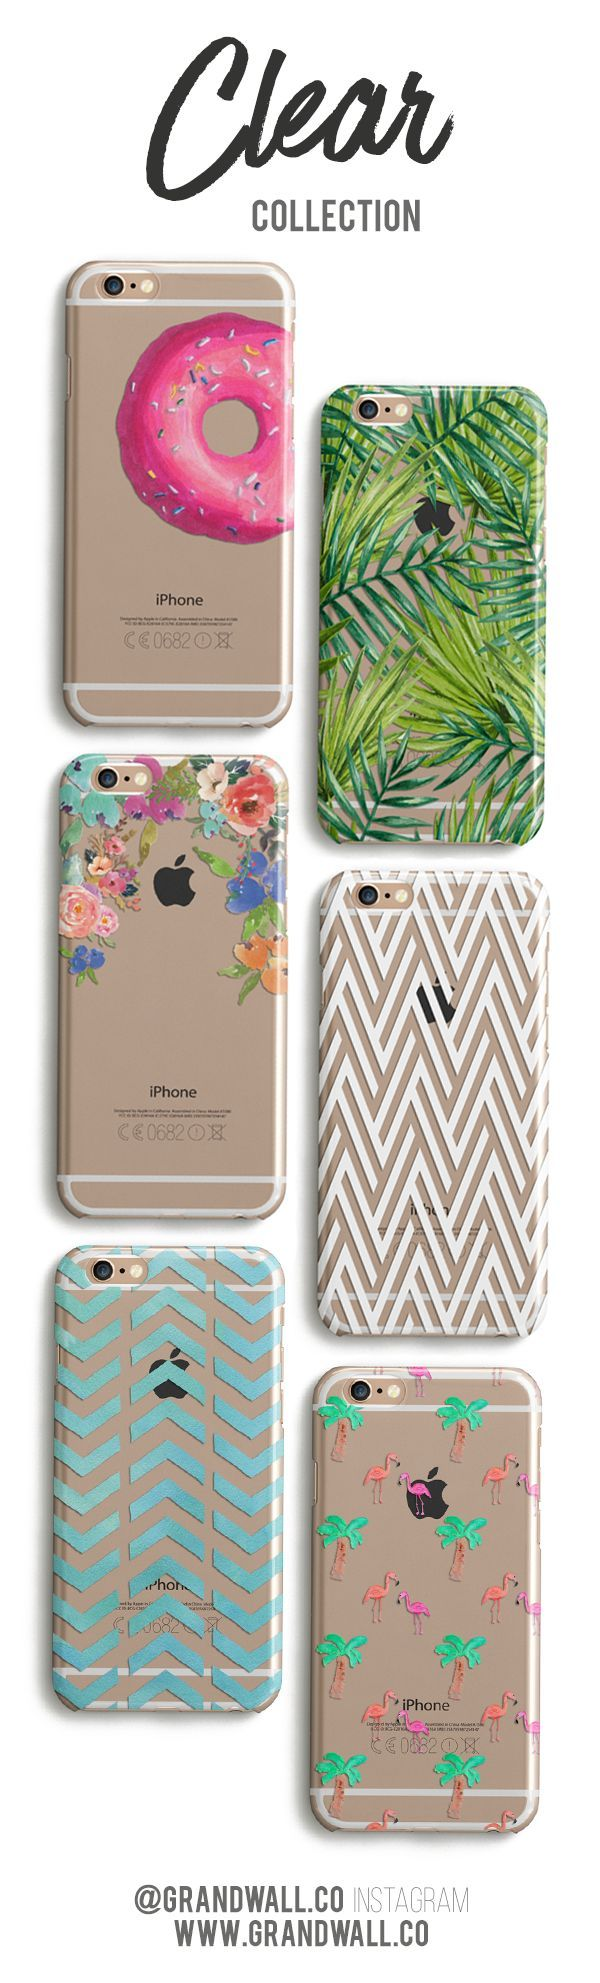 "Use Code ""PINTEREST"" for 10% off these exclusive @Grandwall designs here: grandwall.co/..."